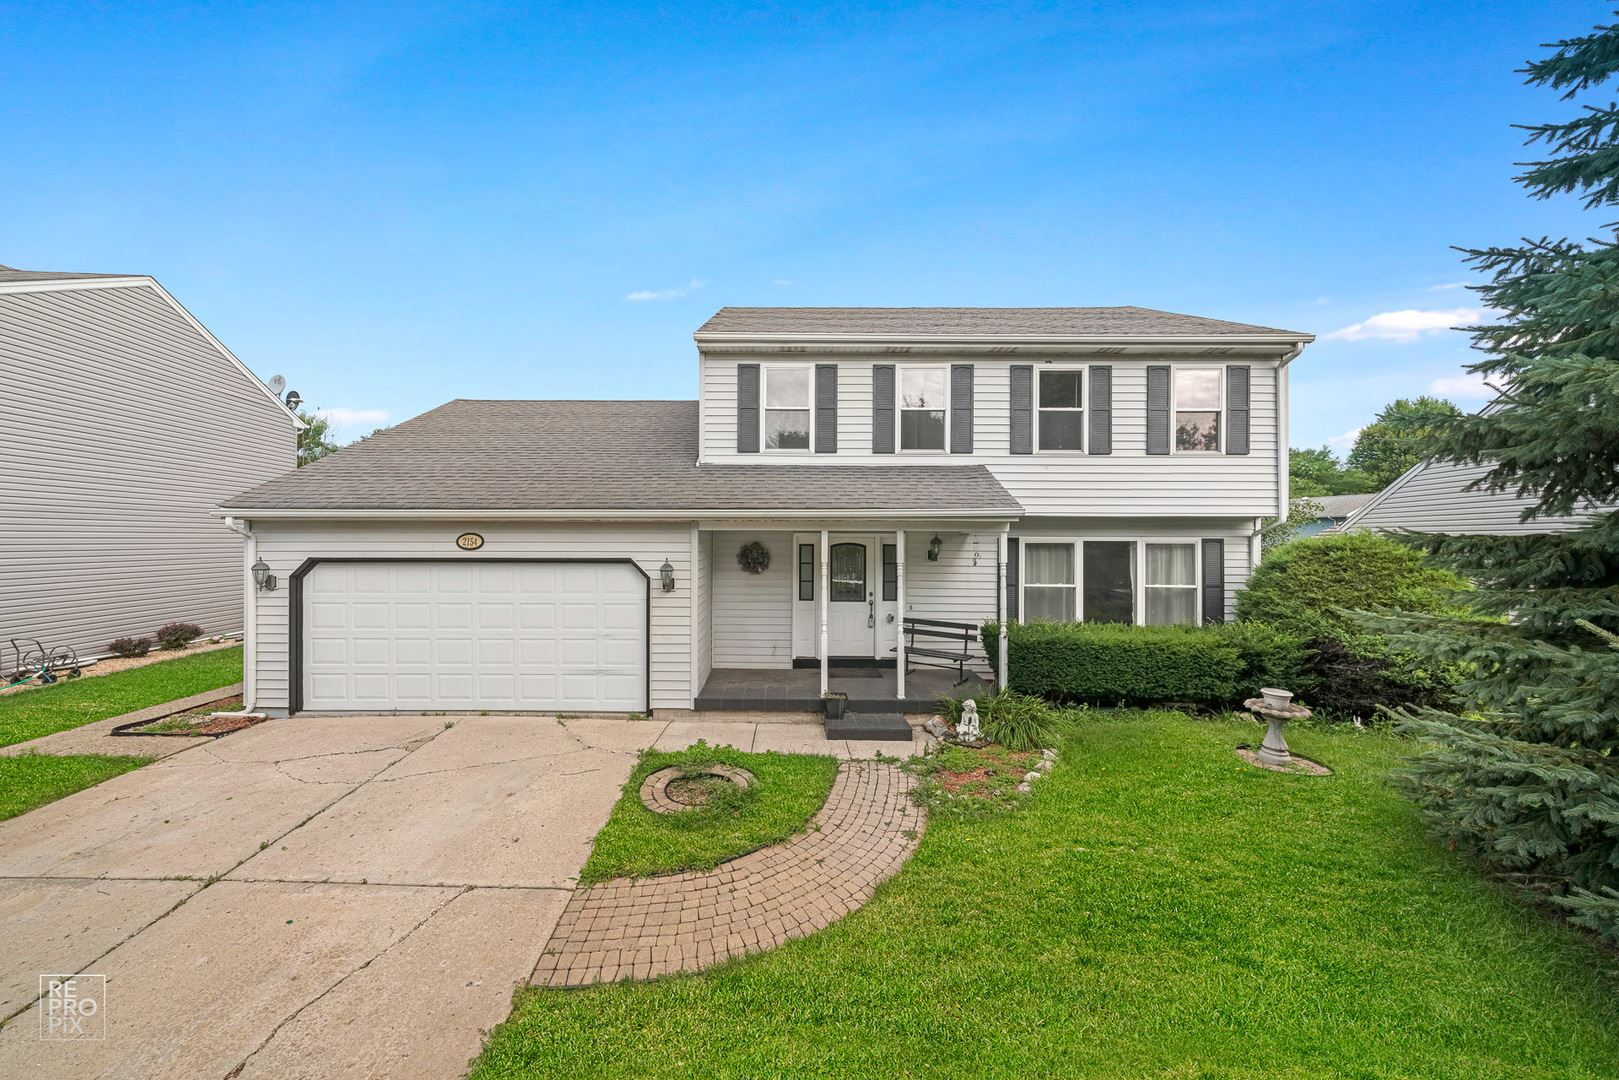 2154 Niagara Court, Elgin, IL 60123 - #: 10776438